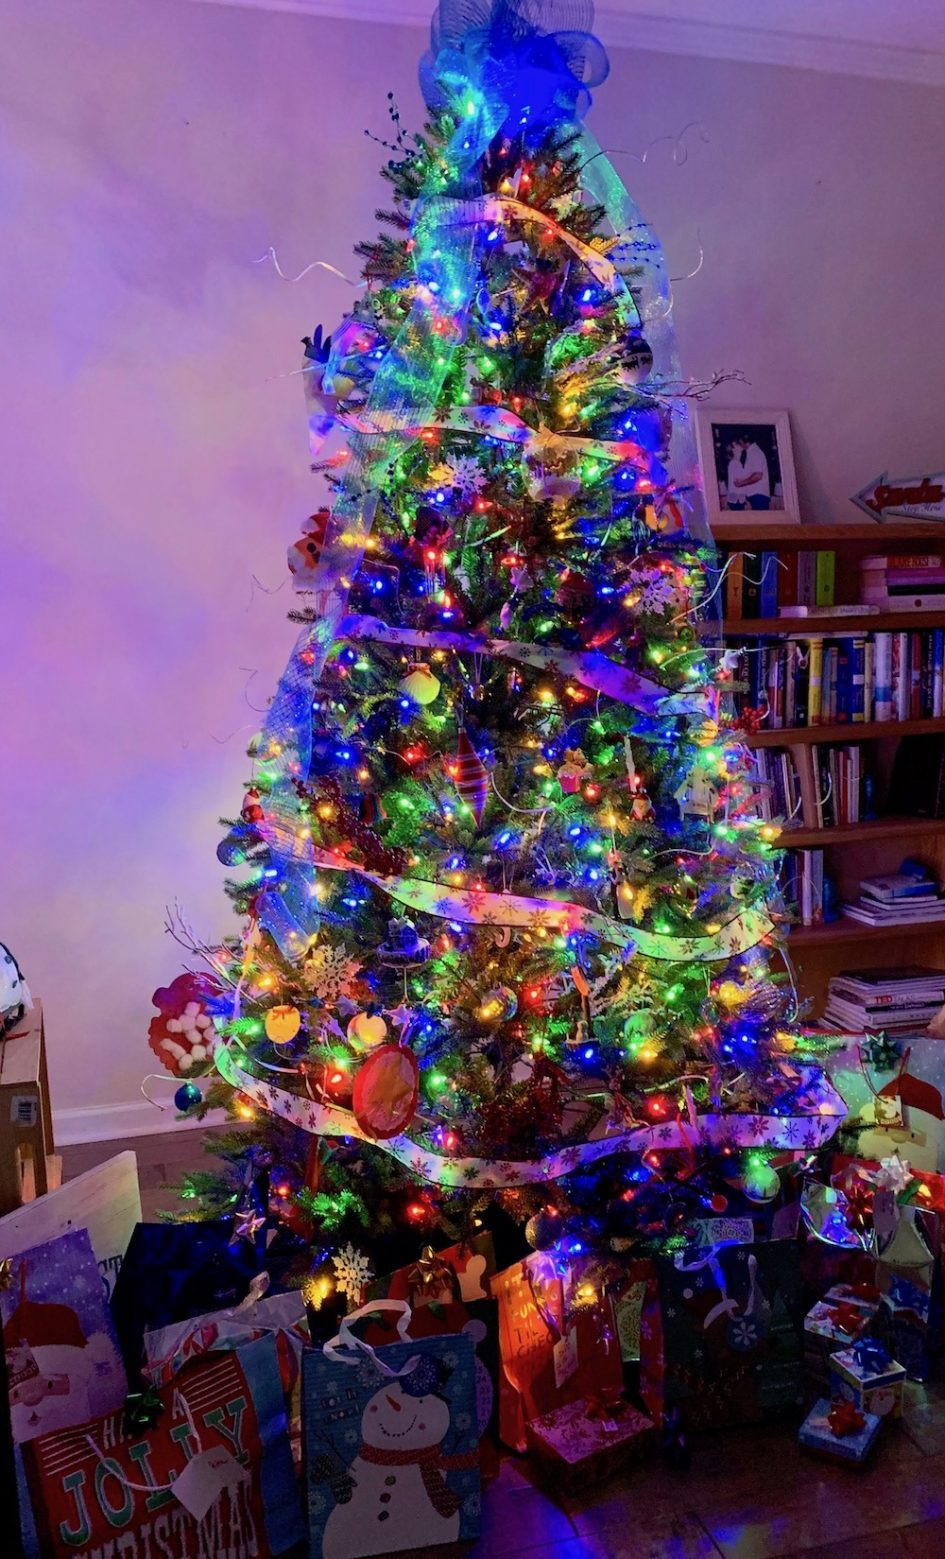 Christmas. Christmas Tree, Christmas Trees, The Holidays, Christmas Holiday, Decorations, Decorating, Decorating for the holidays, bows, Ribbons, Presents, Gifts